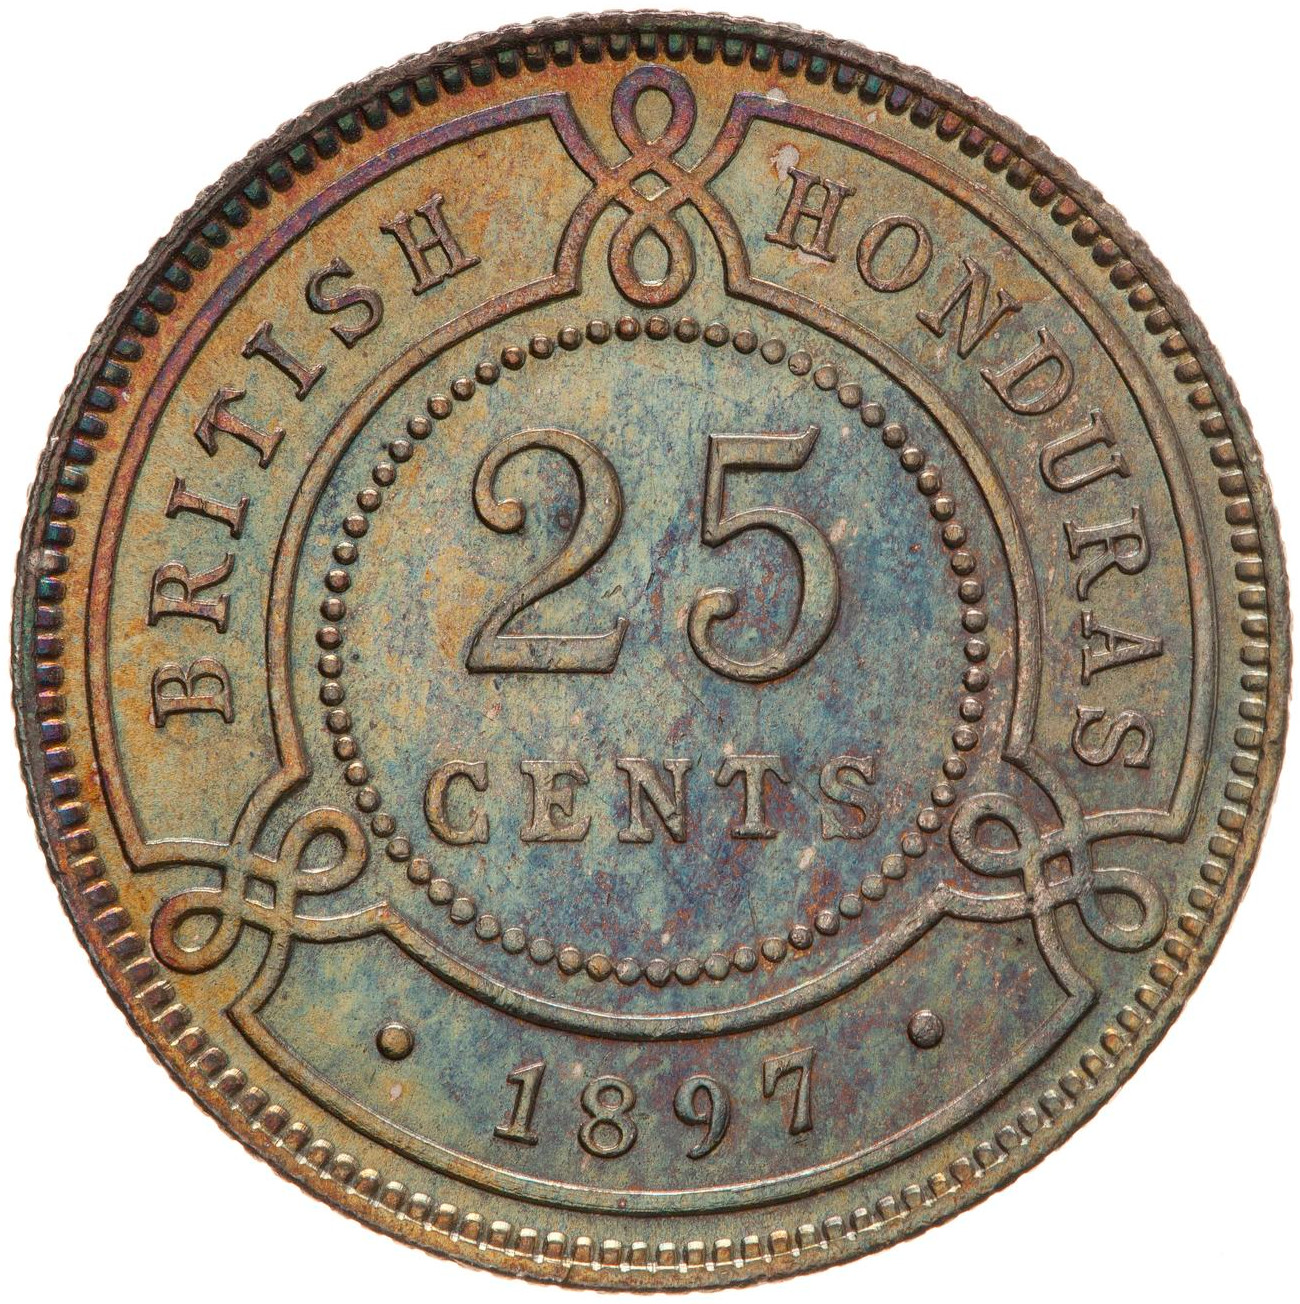 Twenty Five Cents: Photo Coin - 25 Cents, British Honduras (Belize), 1897